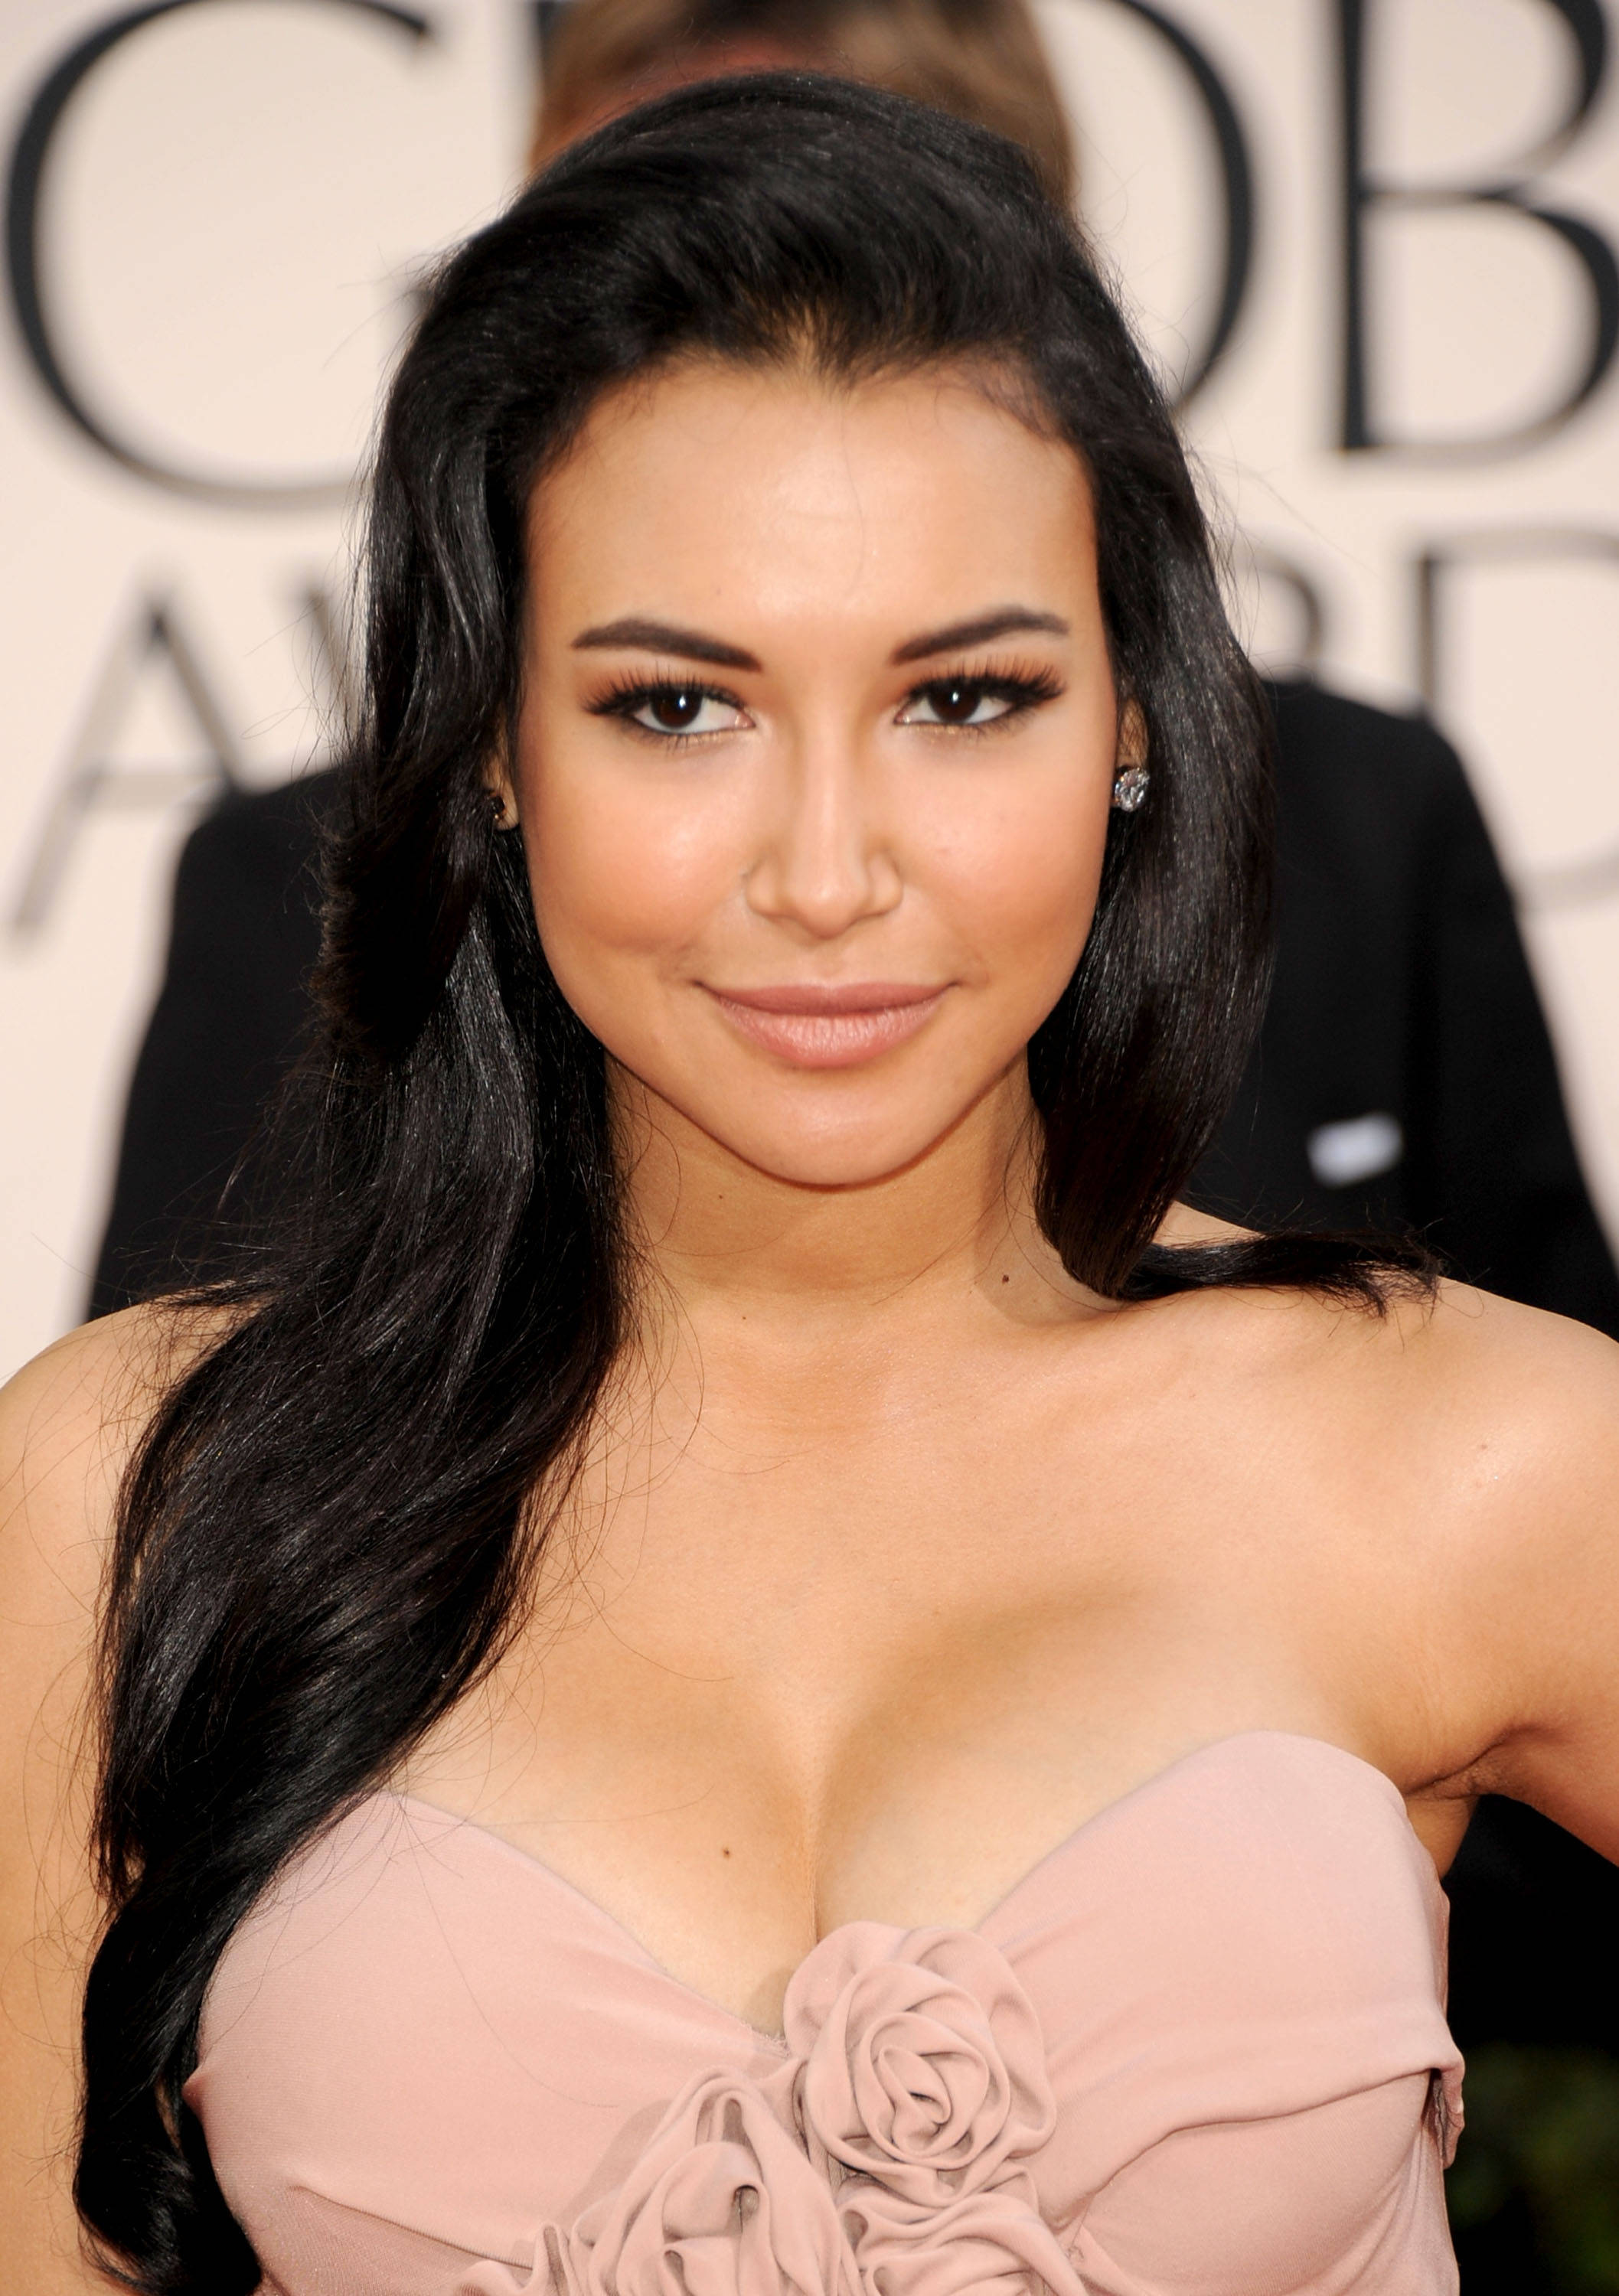 Naya Rivera after plastic surgery